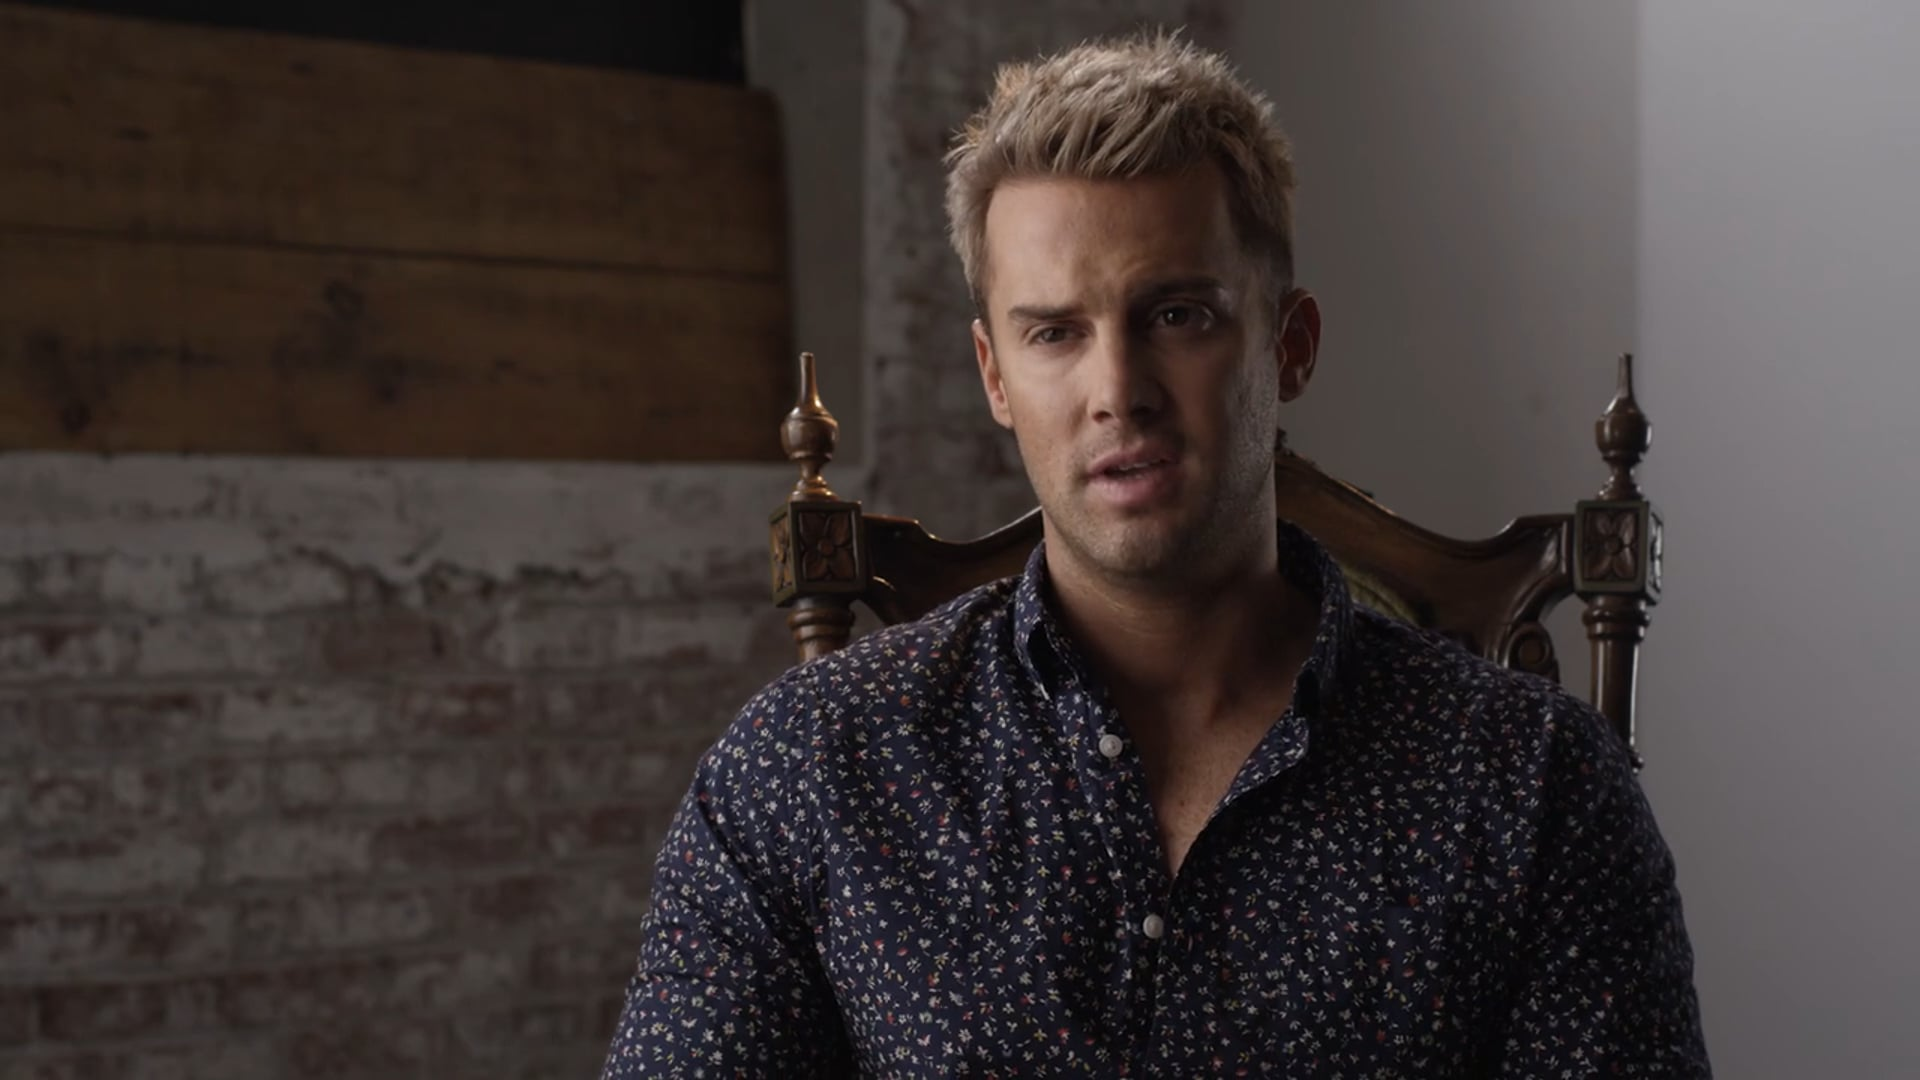 'I'm Positively' HIV Campaign - Tyler